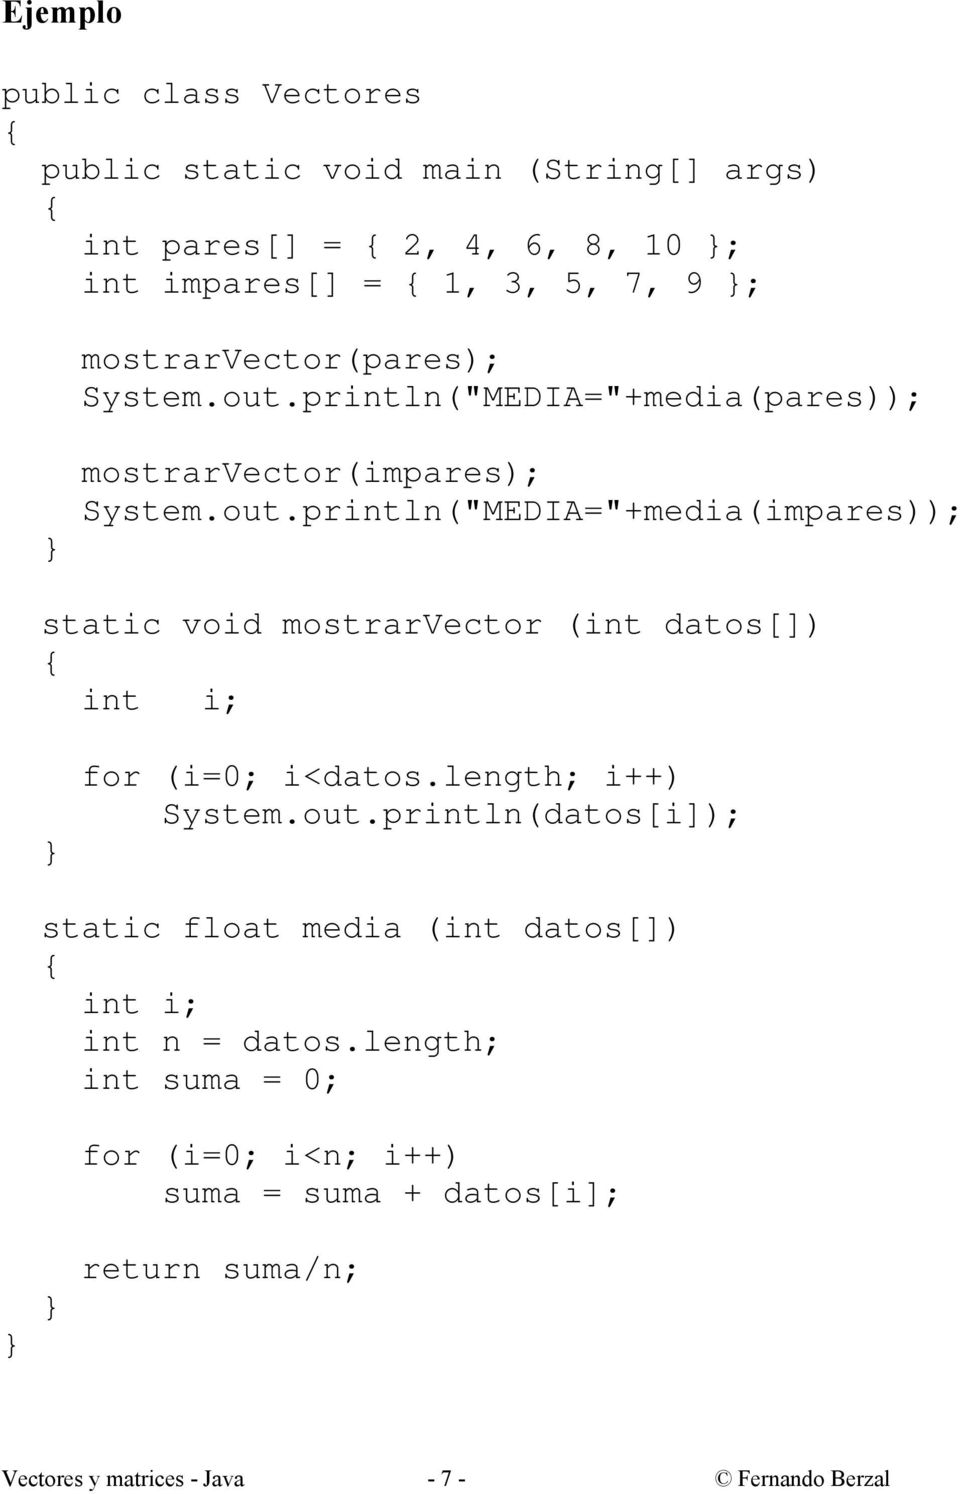 length; i++) System.out.println(datos[i]); static float media (int datos[]) int n = datos.